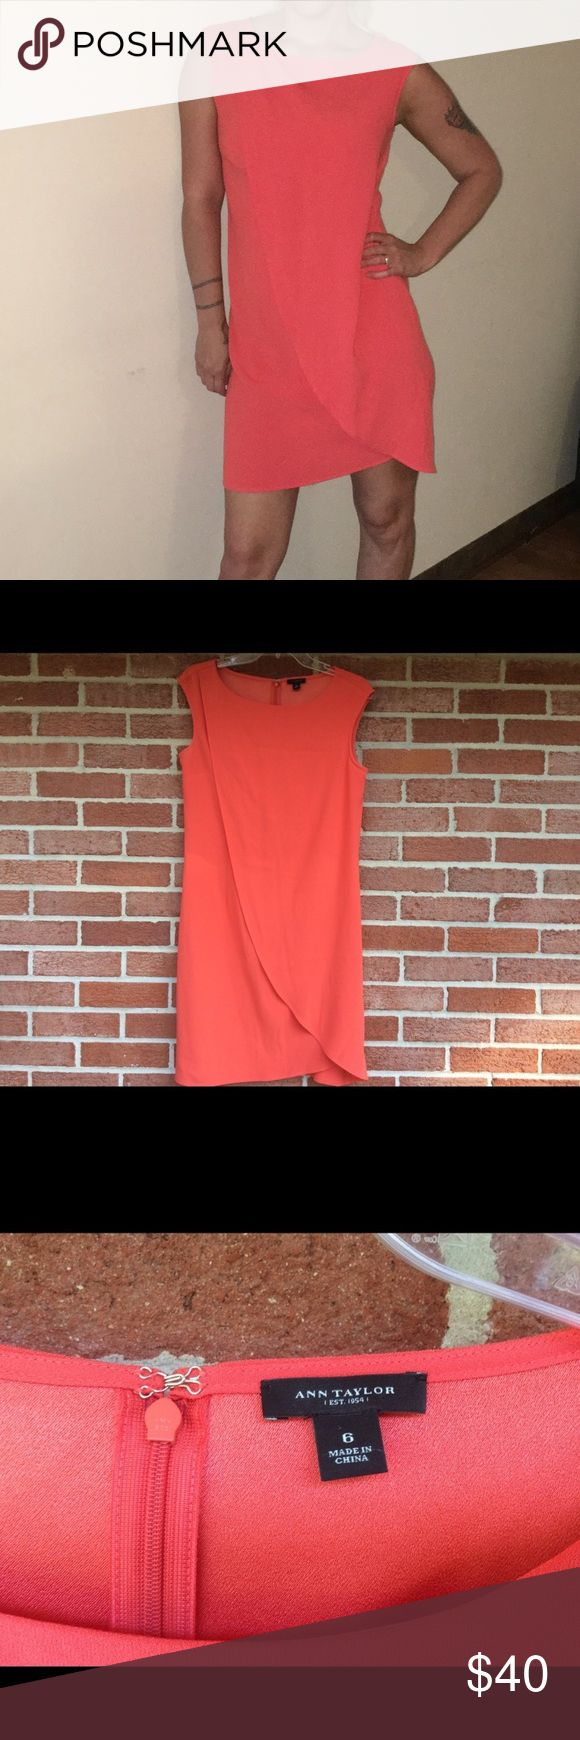 Gorgeous dress by Ann Taylor size 6 Really flattering dress by Ann Taylor size 6 orange perfect for any occasion Ann Taylor Dresses Mini